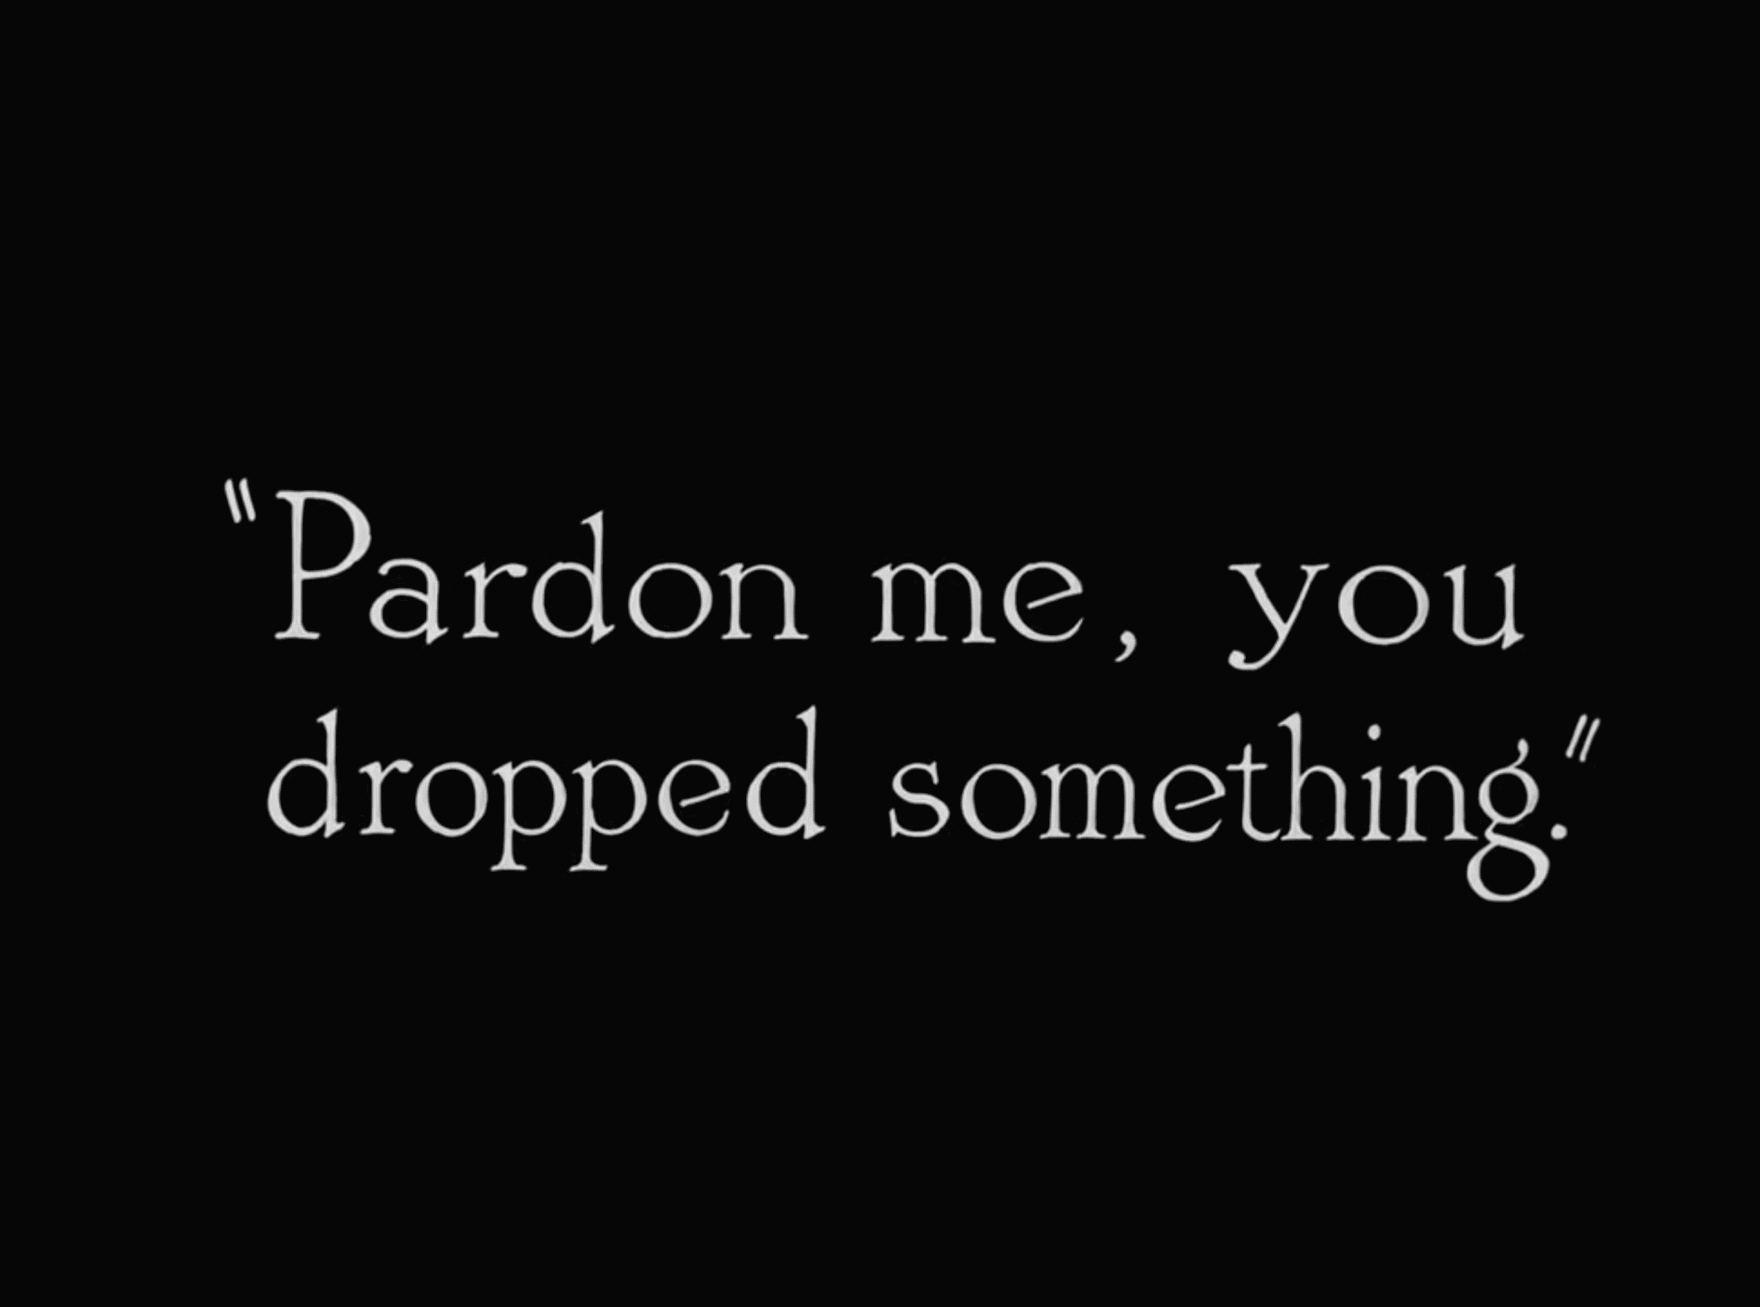 Intertitle from the silent movie The Kid by Charlie Chaplin in 1921, which reads 'Pardon me, you dropped something.'